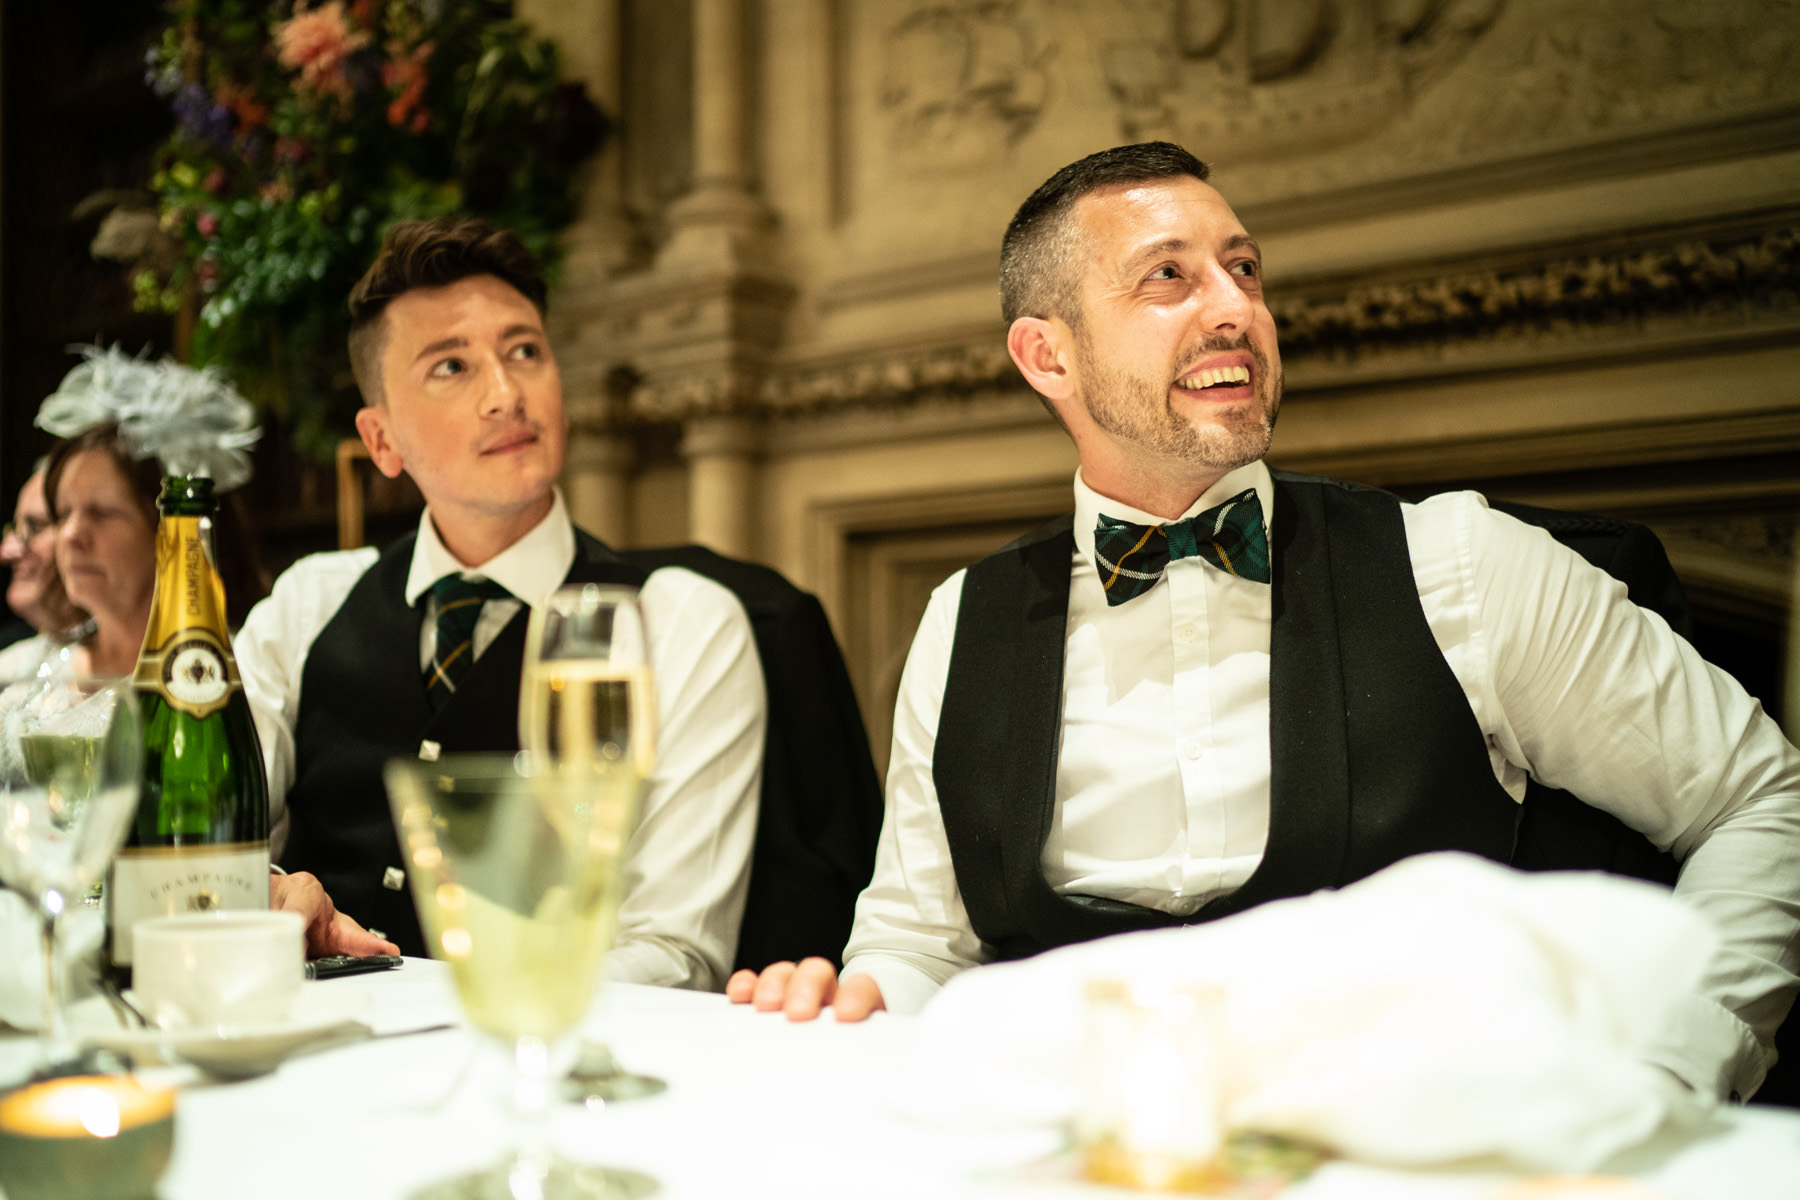 Groom looks at his new best man during the wedding speeches in the library at The Elvetham